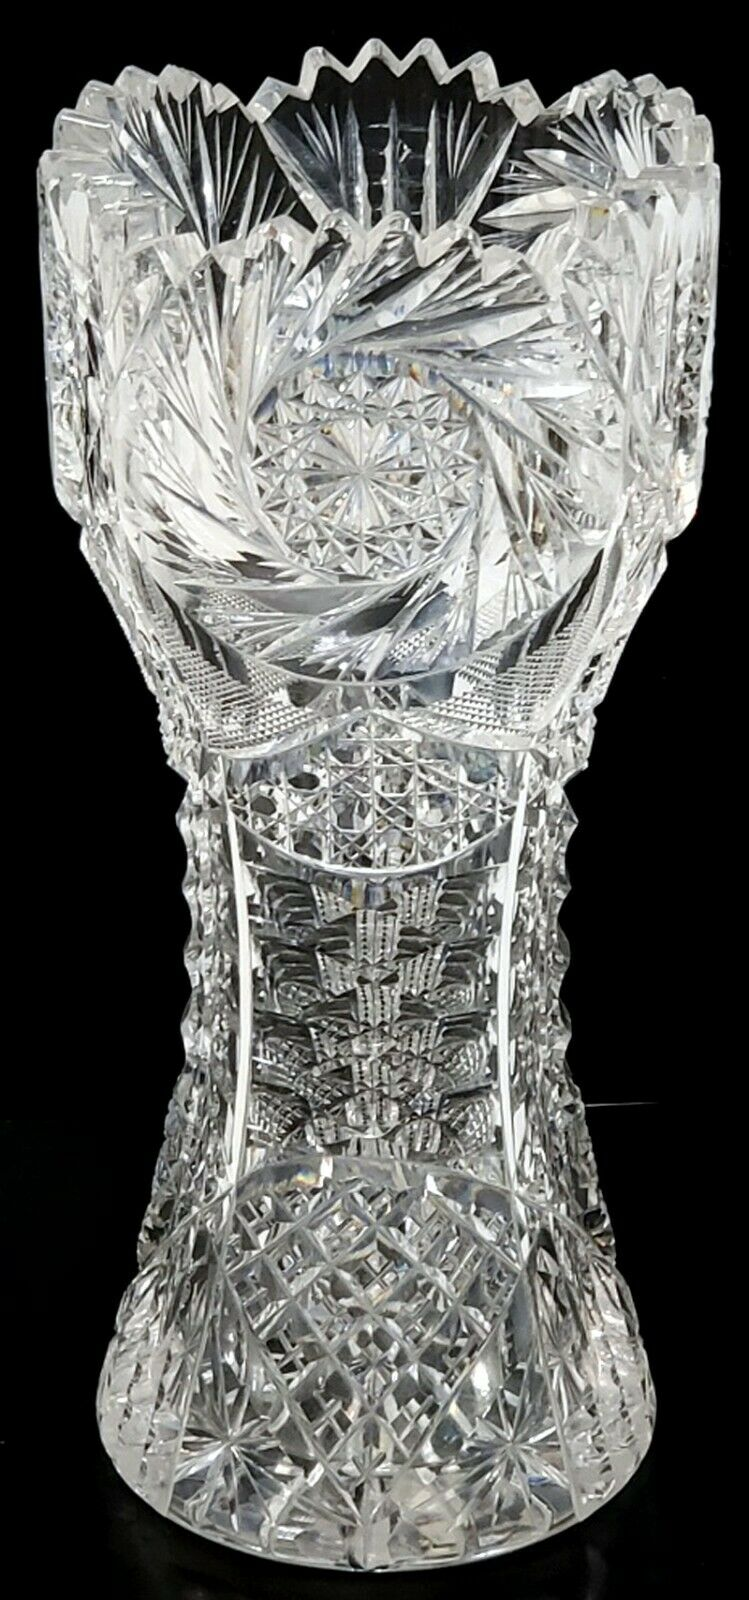 STUNNING ANTIQUE ABP AMERICAN BRILLIANT CUT GLASS CORSET VASE THICK FINELY CUT - $213.50